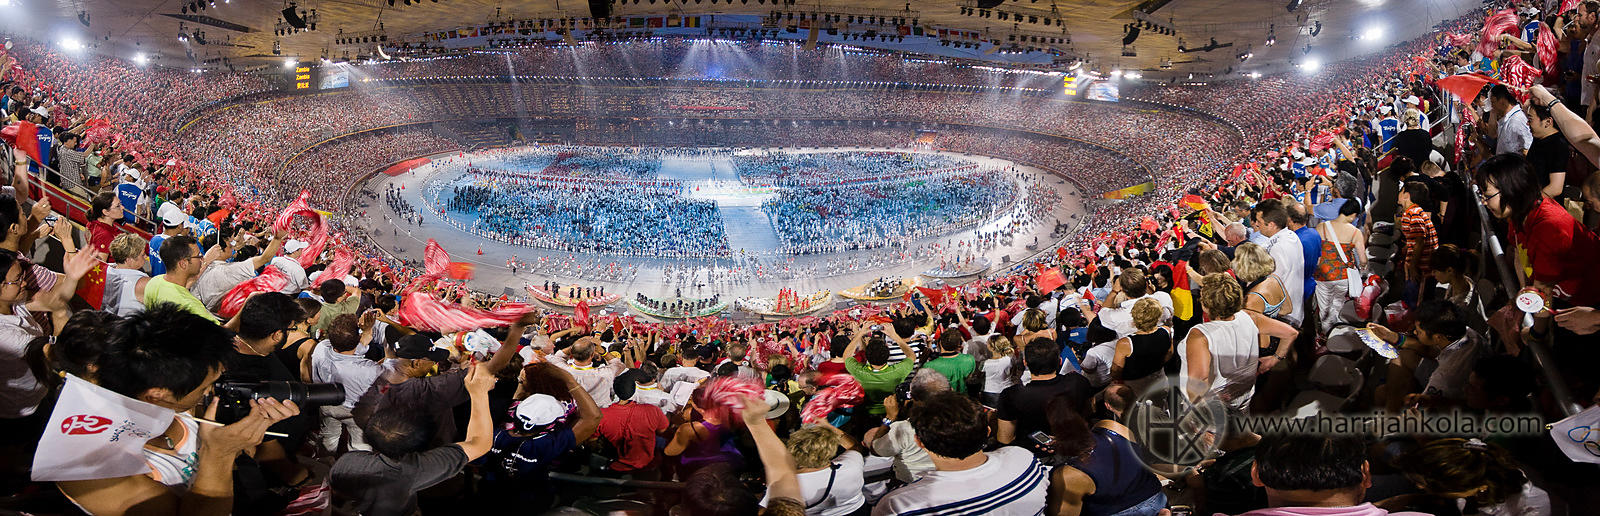 China - Beijing - Bird's Nest (2008 Olympics Opening Ceremony Crowds)